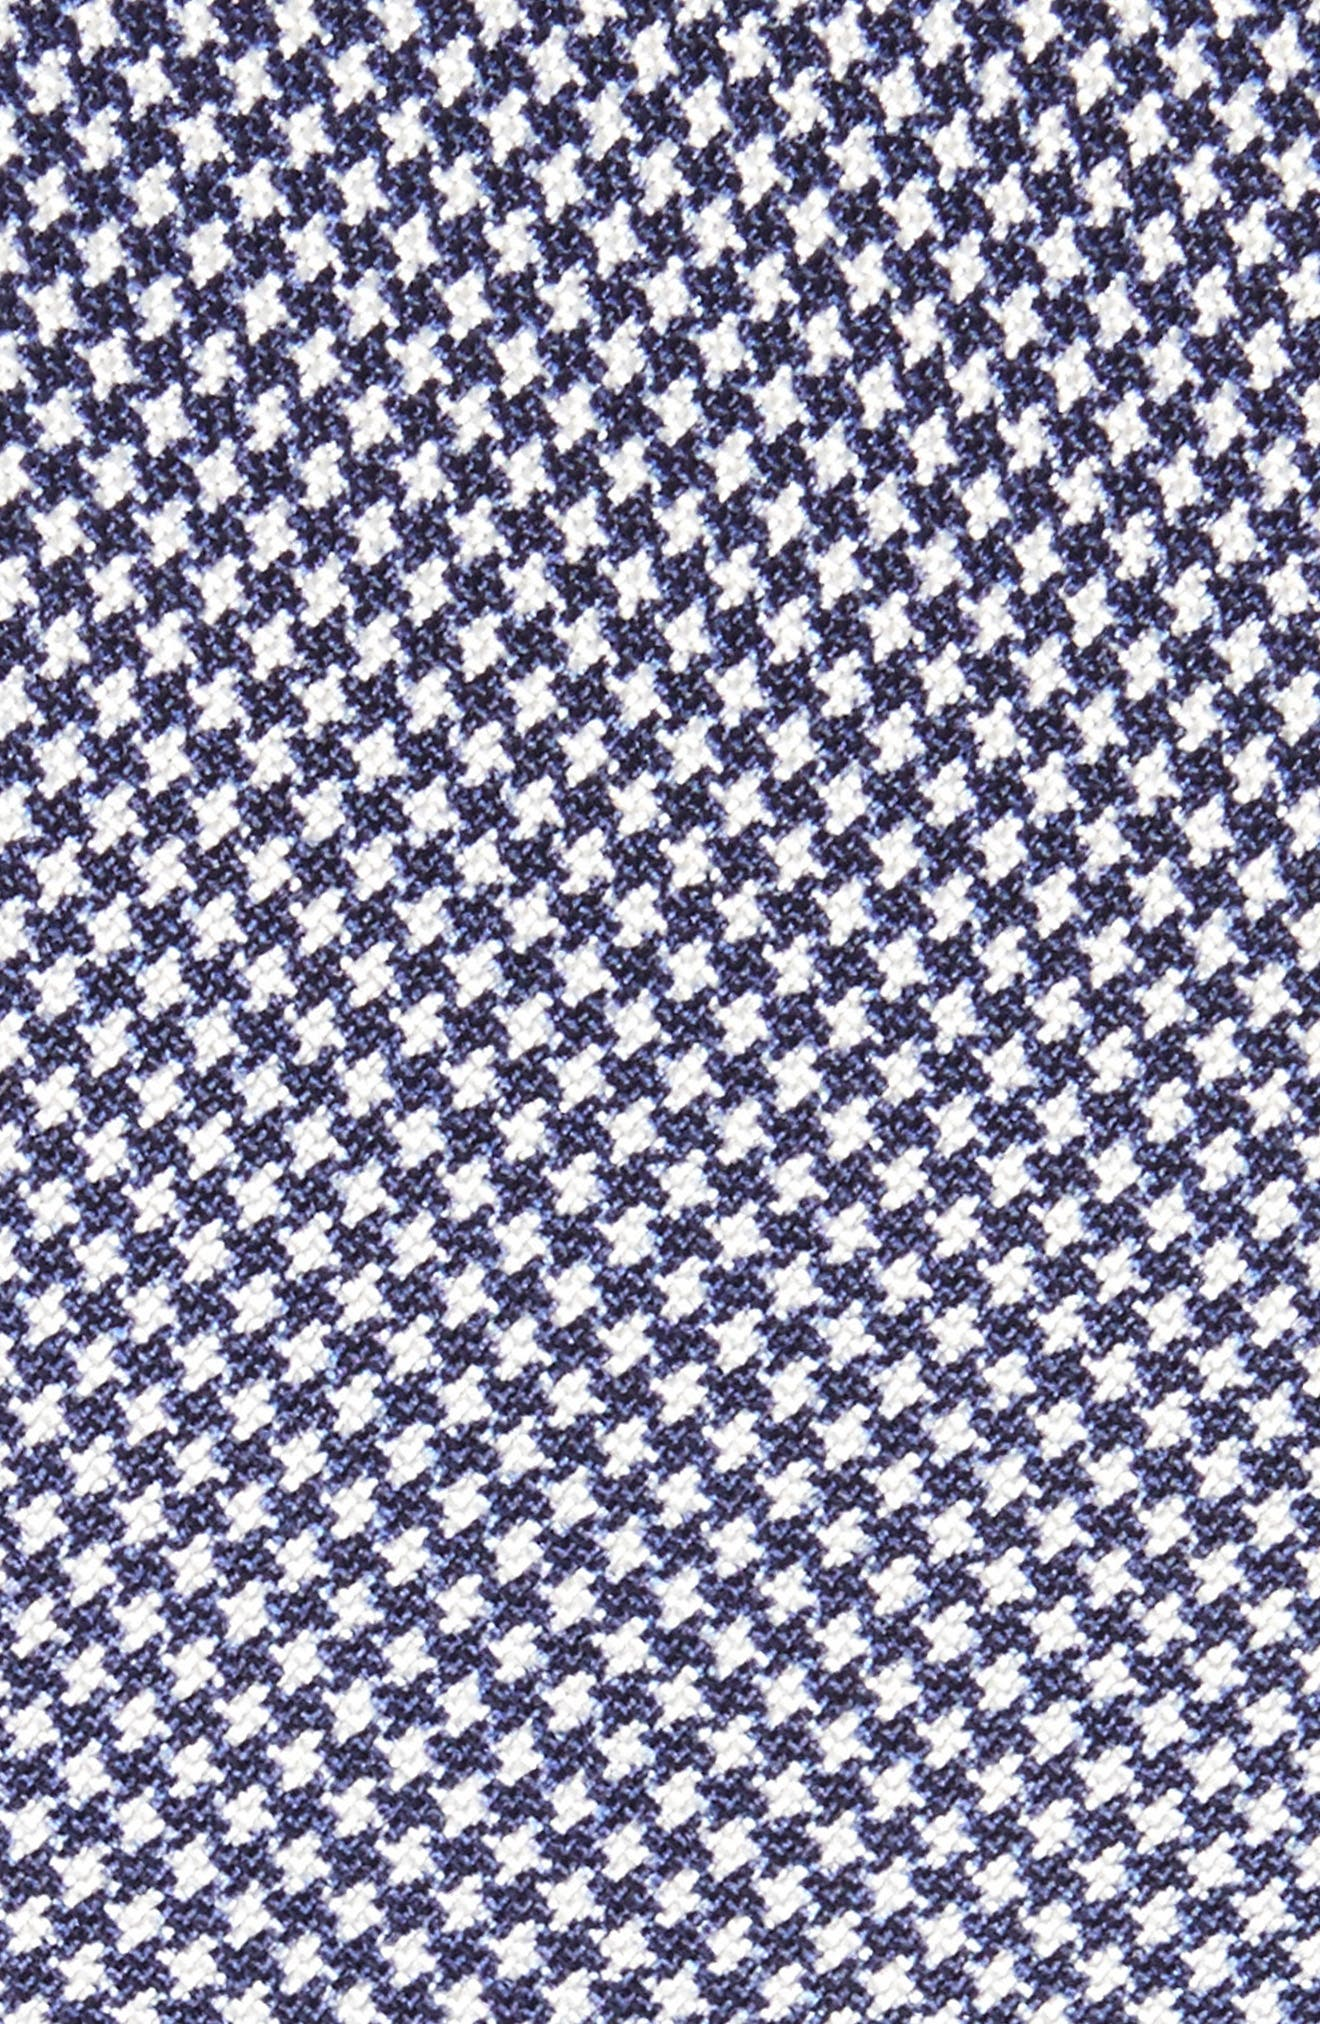 Houndstooth Silk Skinny Tie,                             Alternate thumbnail 2, color,                             Navy